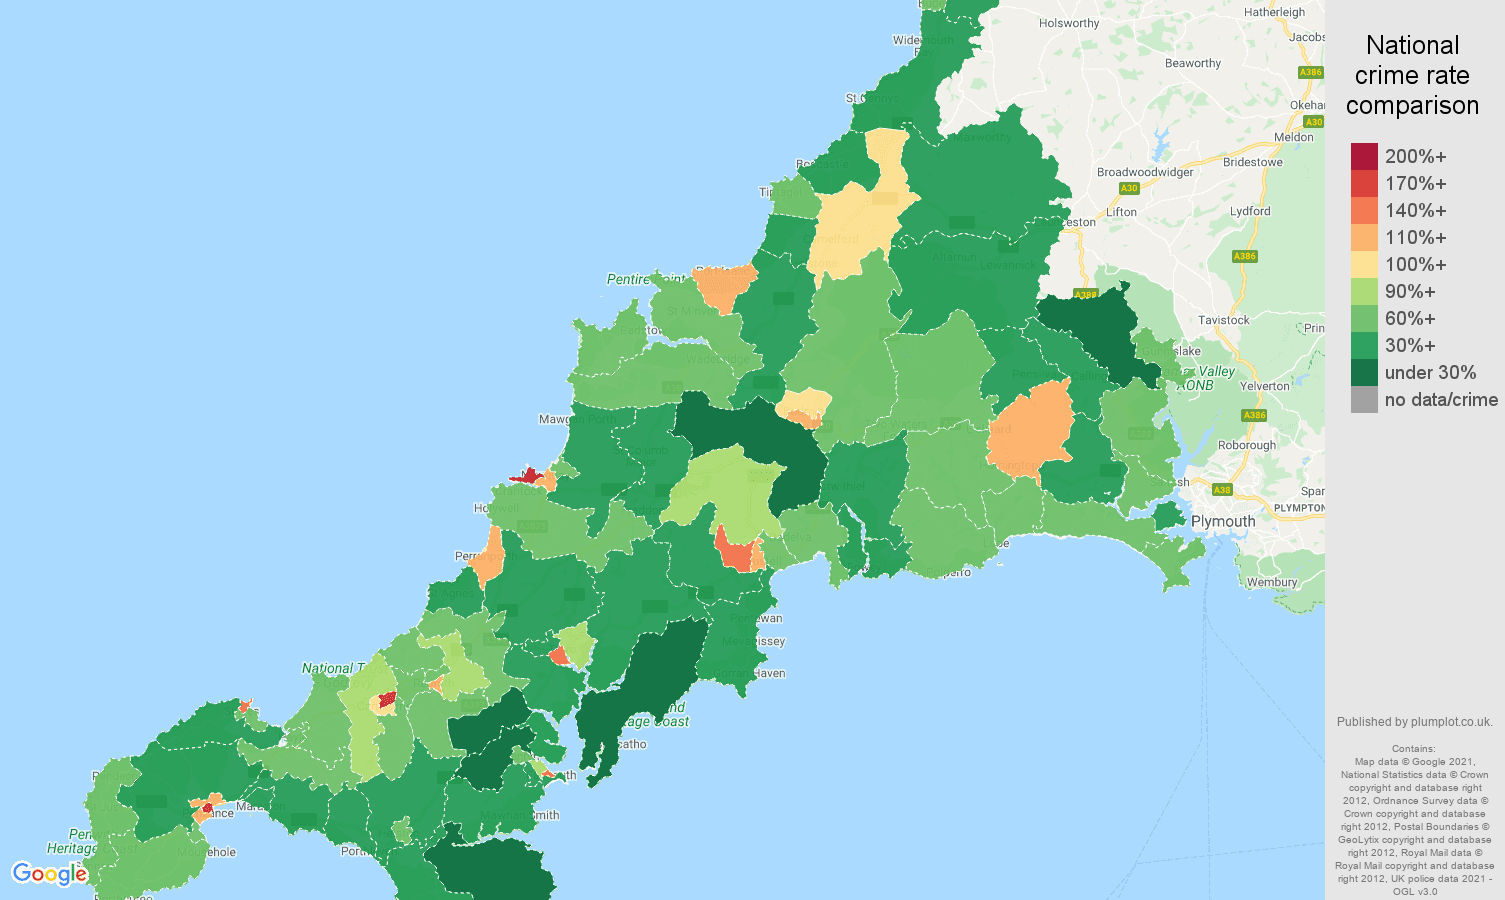 Cornwall antisocial behaviour crime rate comparison map